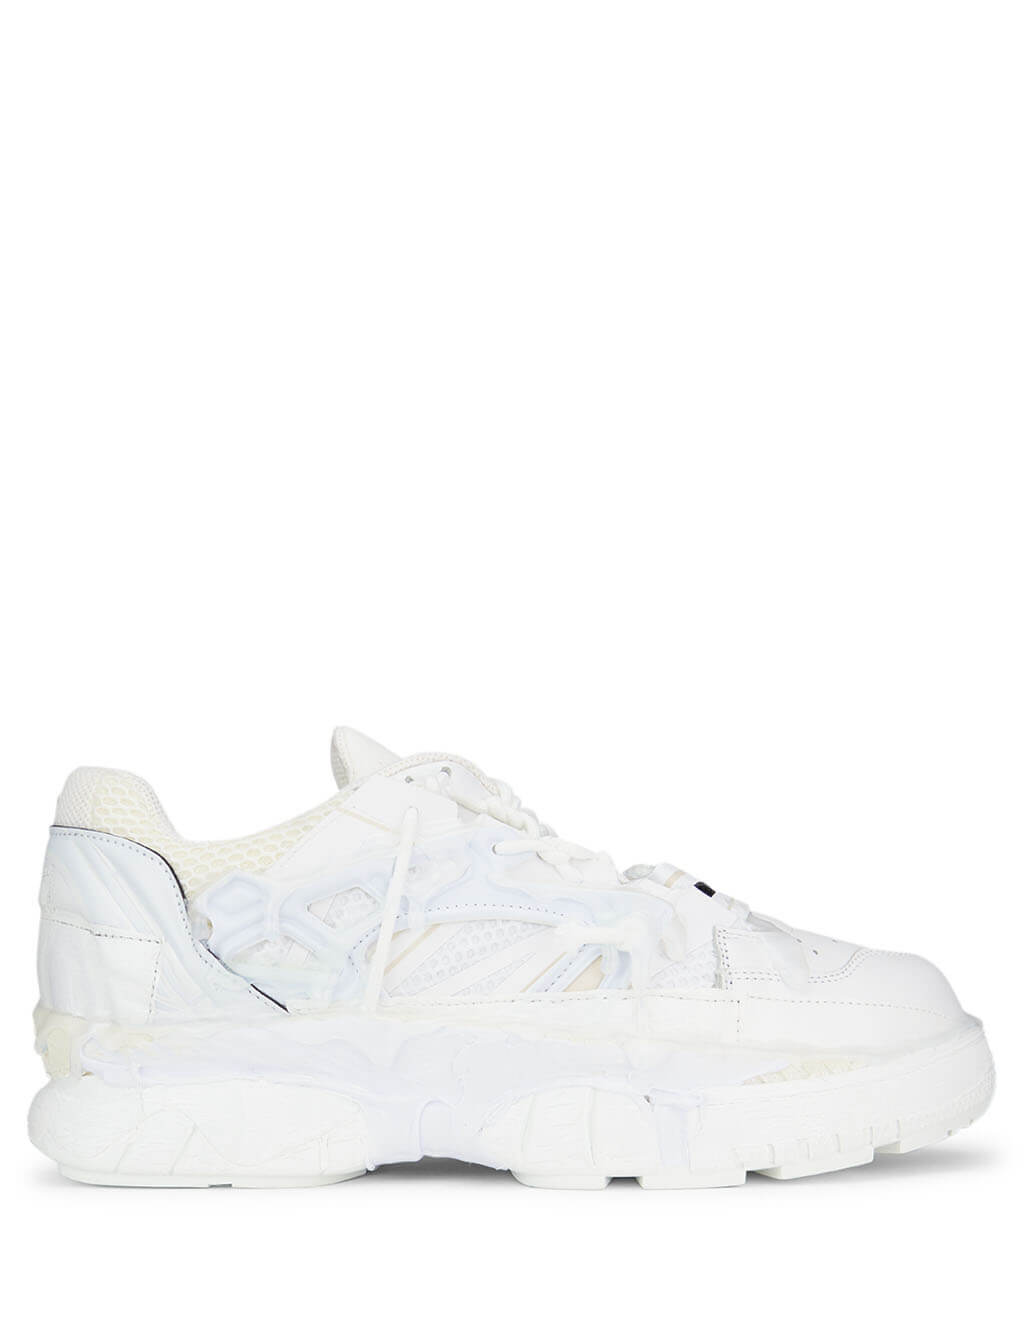 Maison Margiela Men's Giuio Fashion White Fusion Sneakers S57WS0257P2695T1003